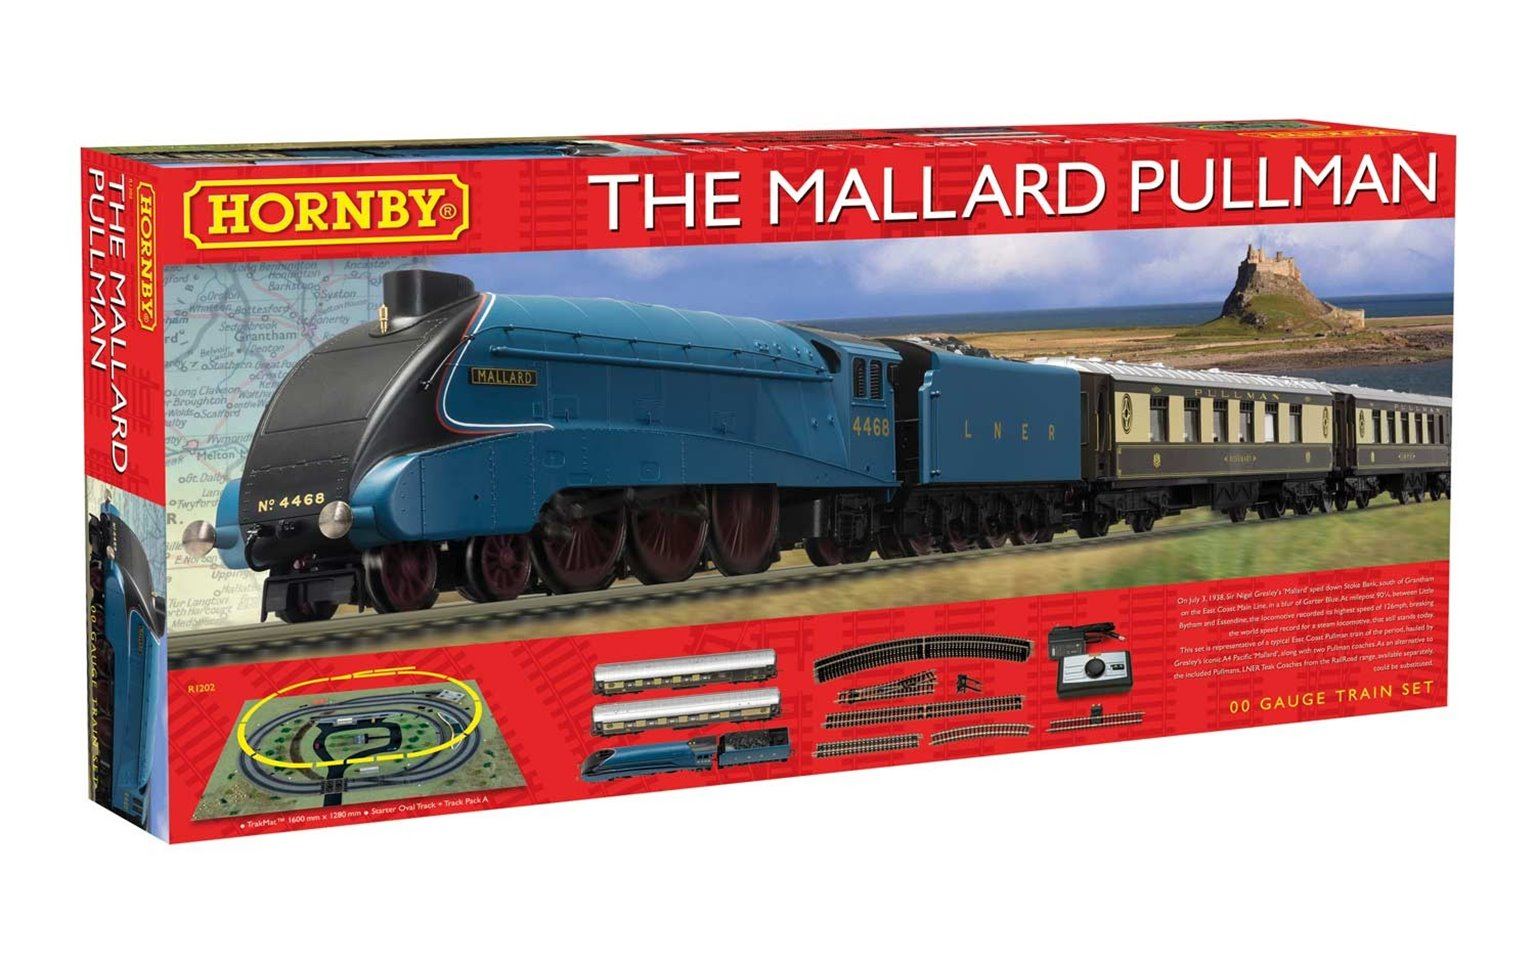 The Mallard Pullman Train Set